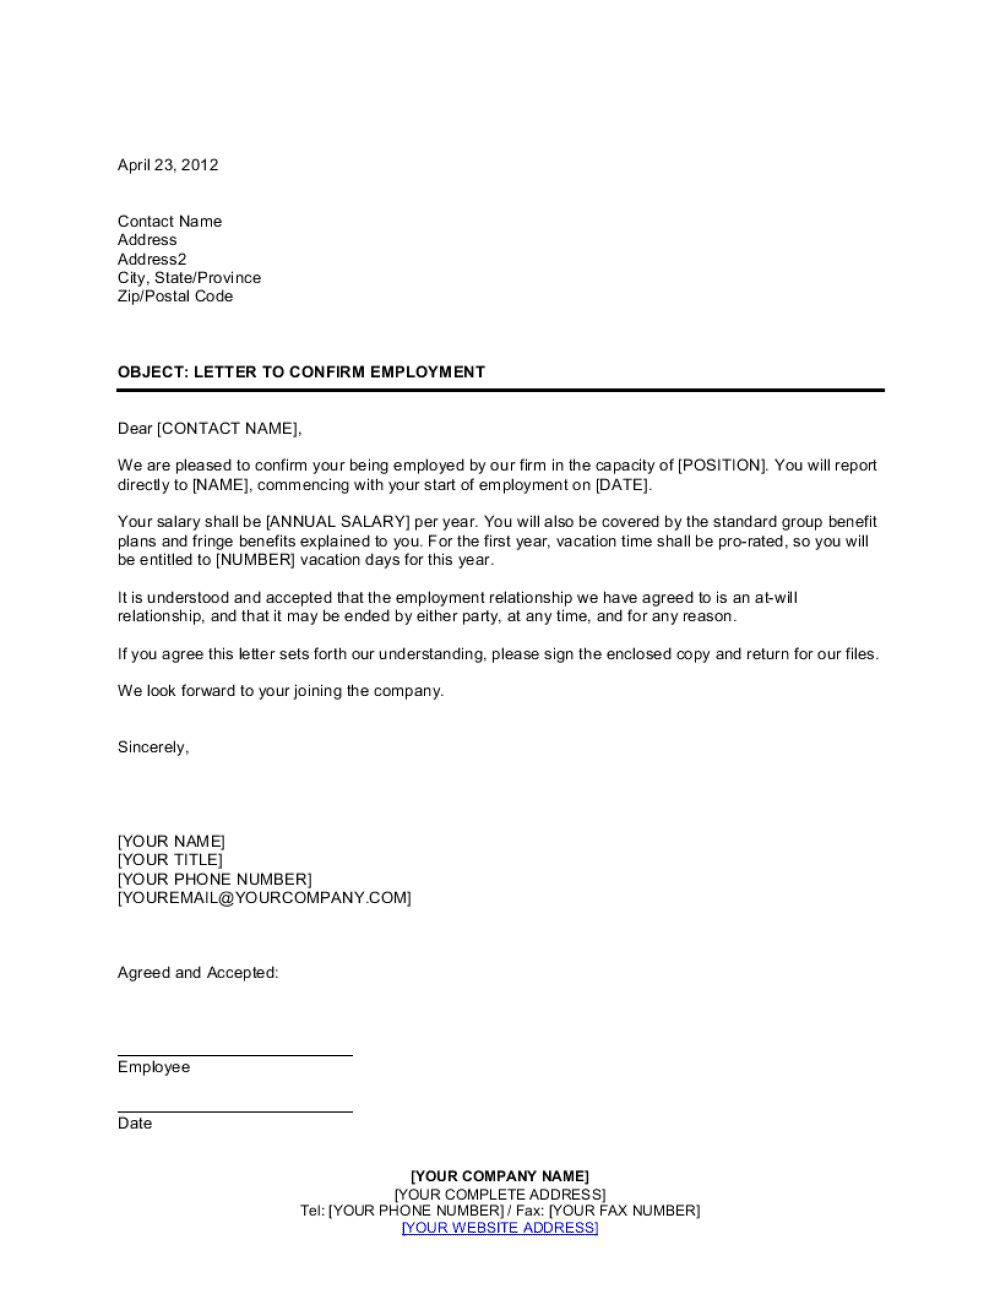 003 Astounding Proof Of Employment Letter Template Design  Confirmation Word FreeFull